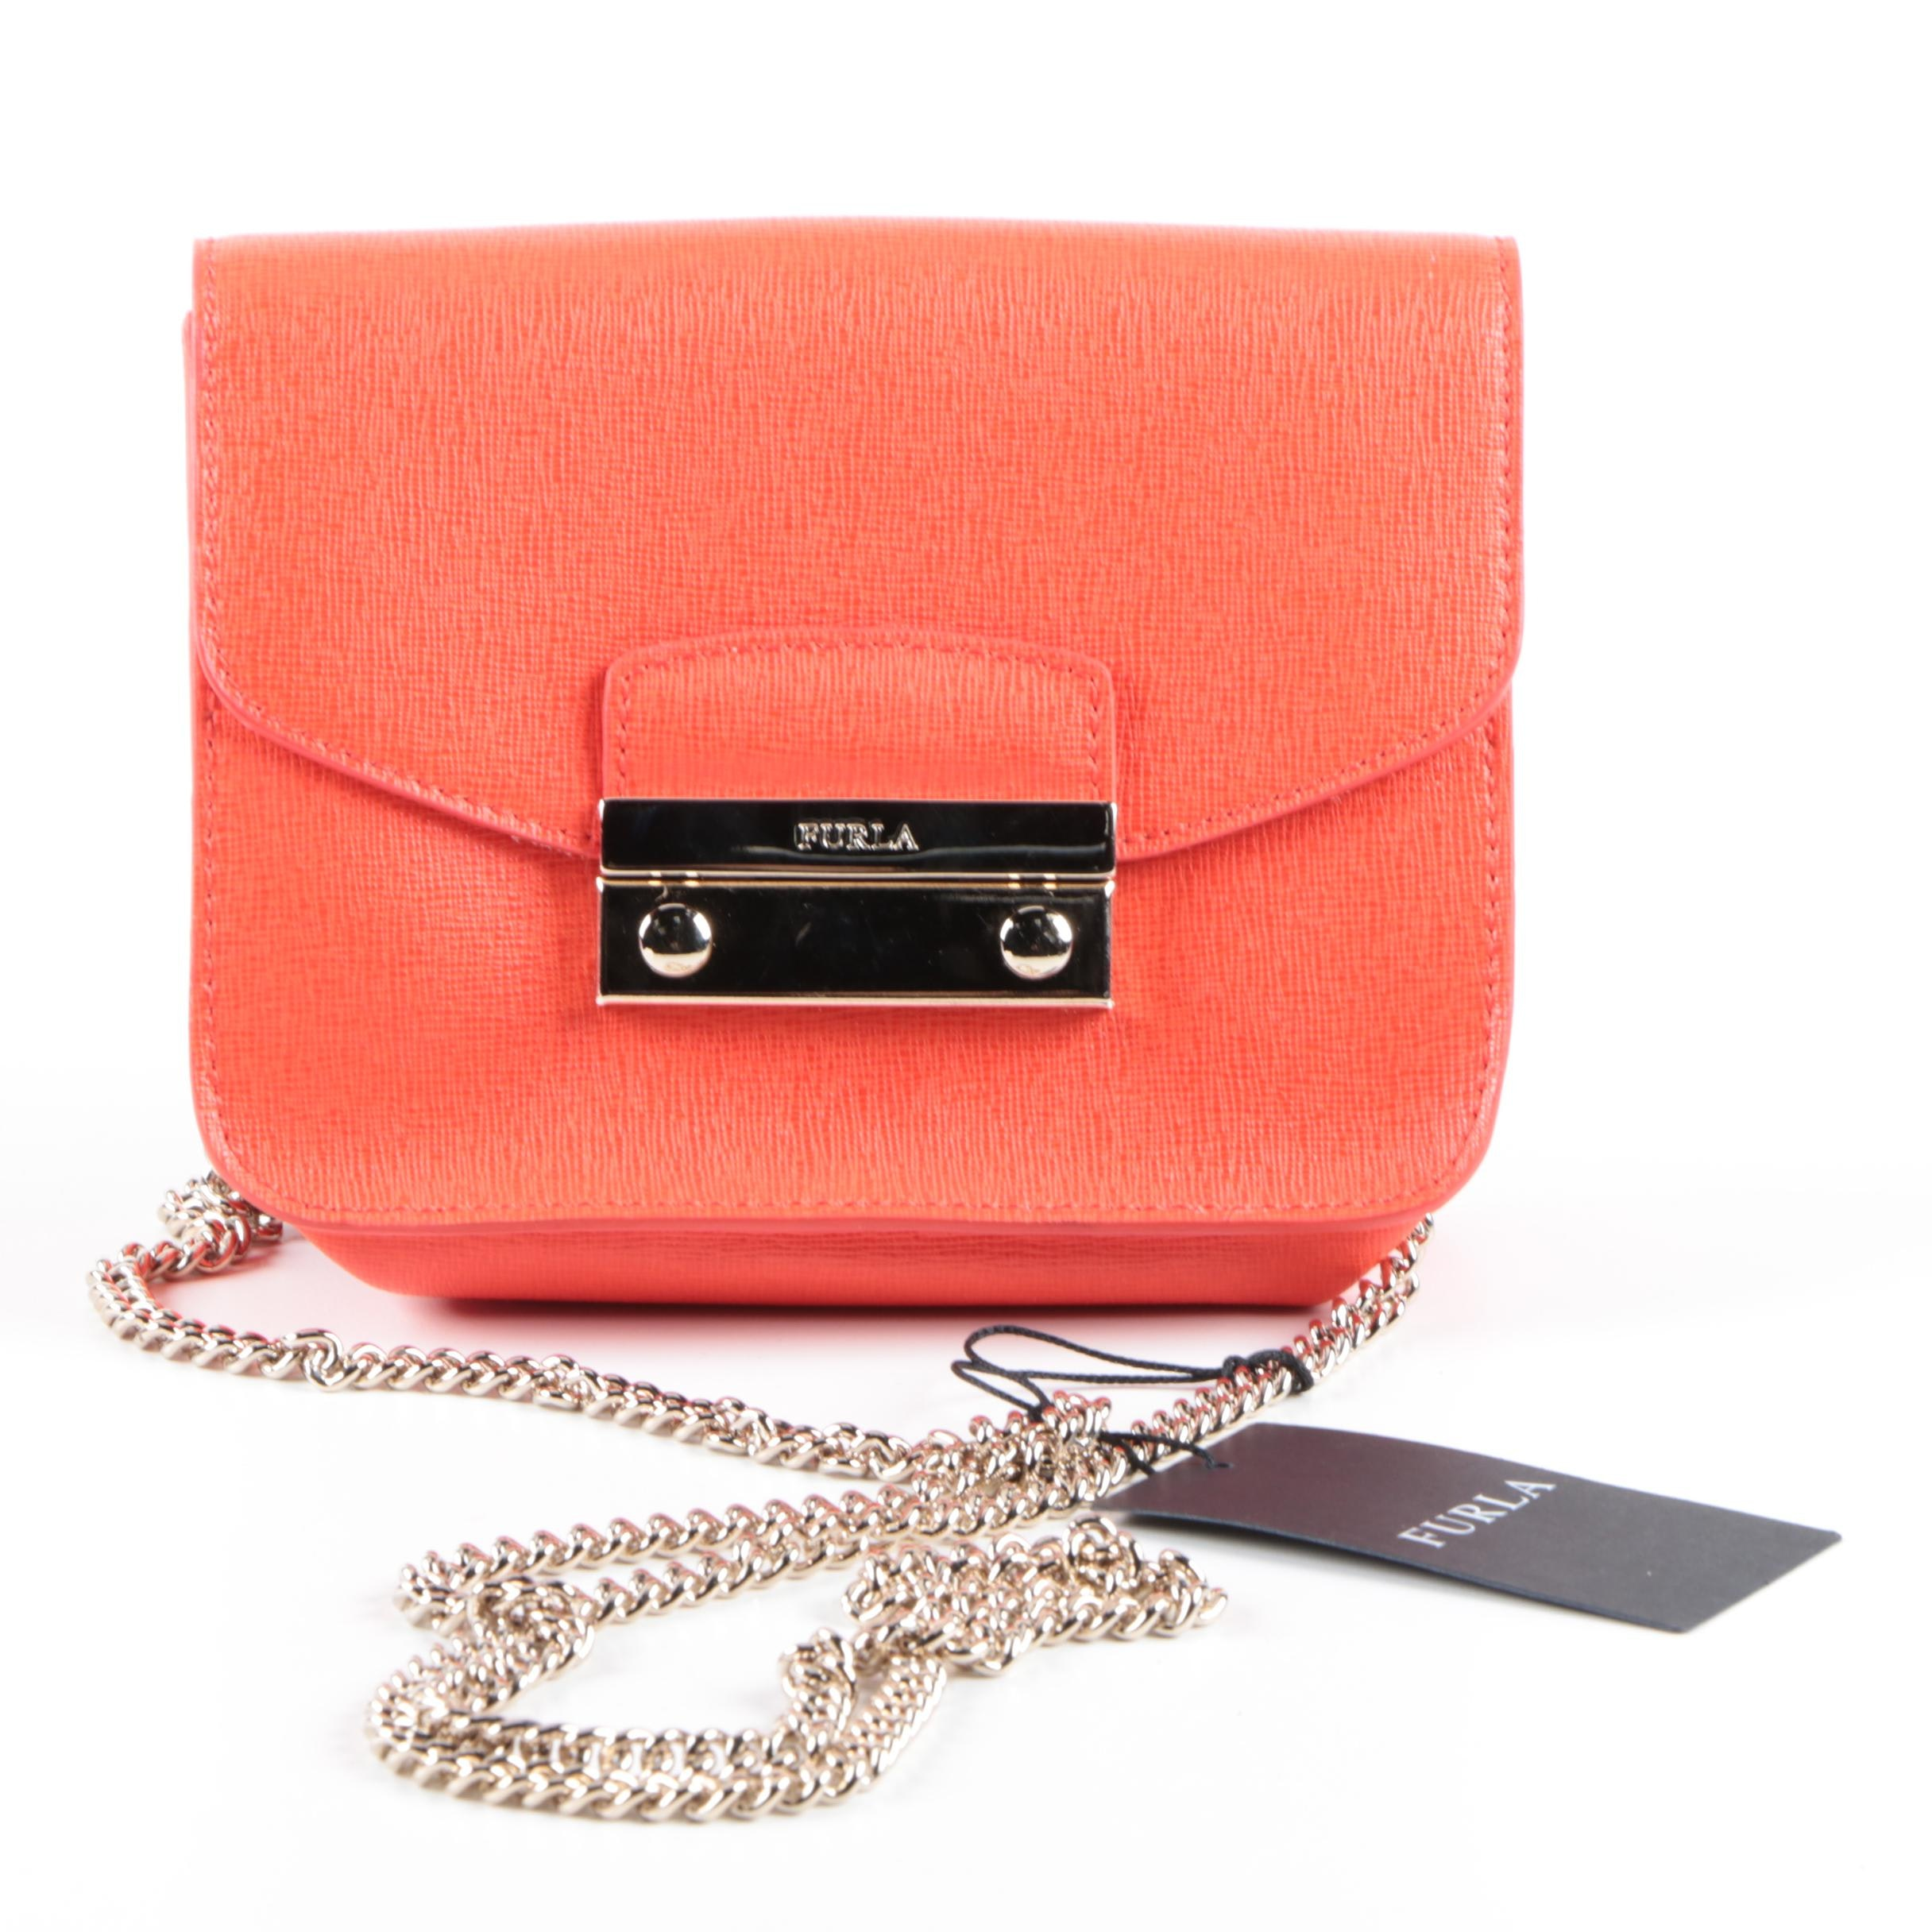 Furla Orange Leather Crossbody Bag